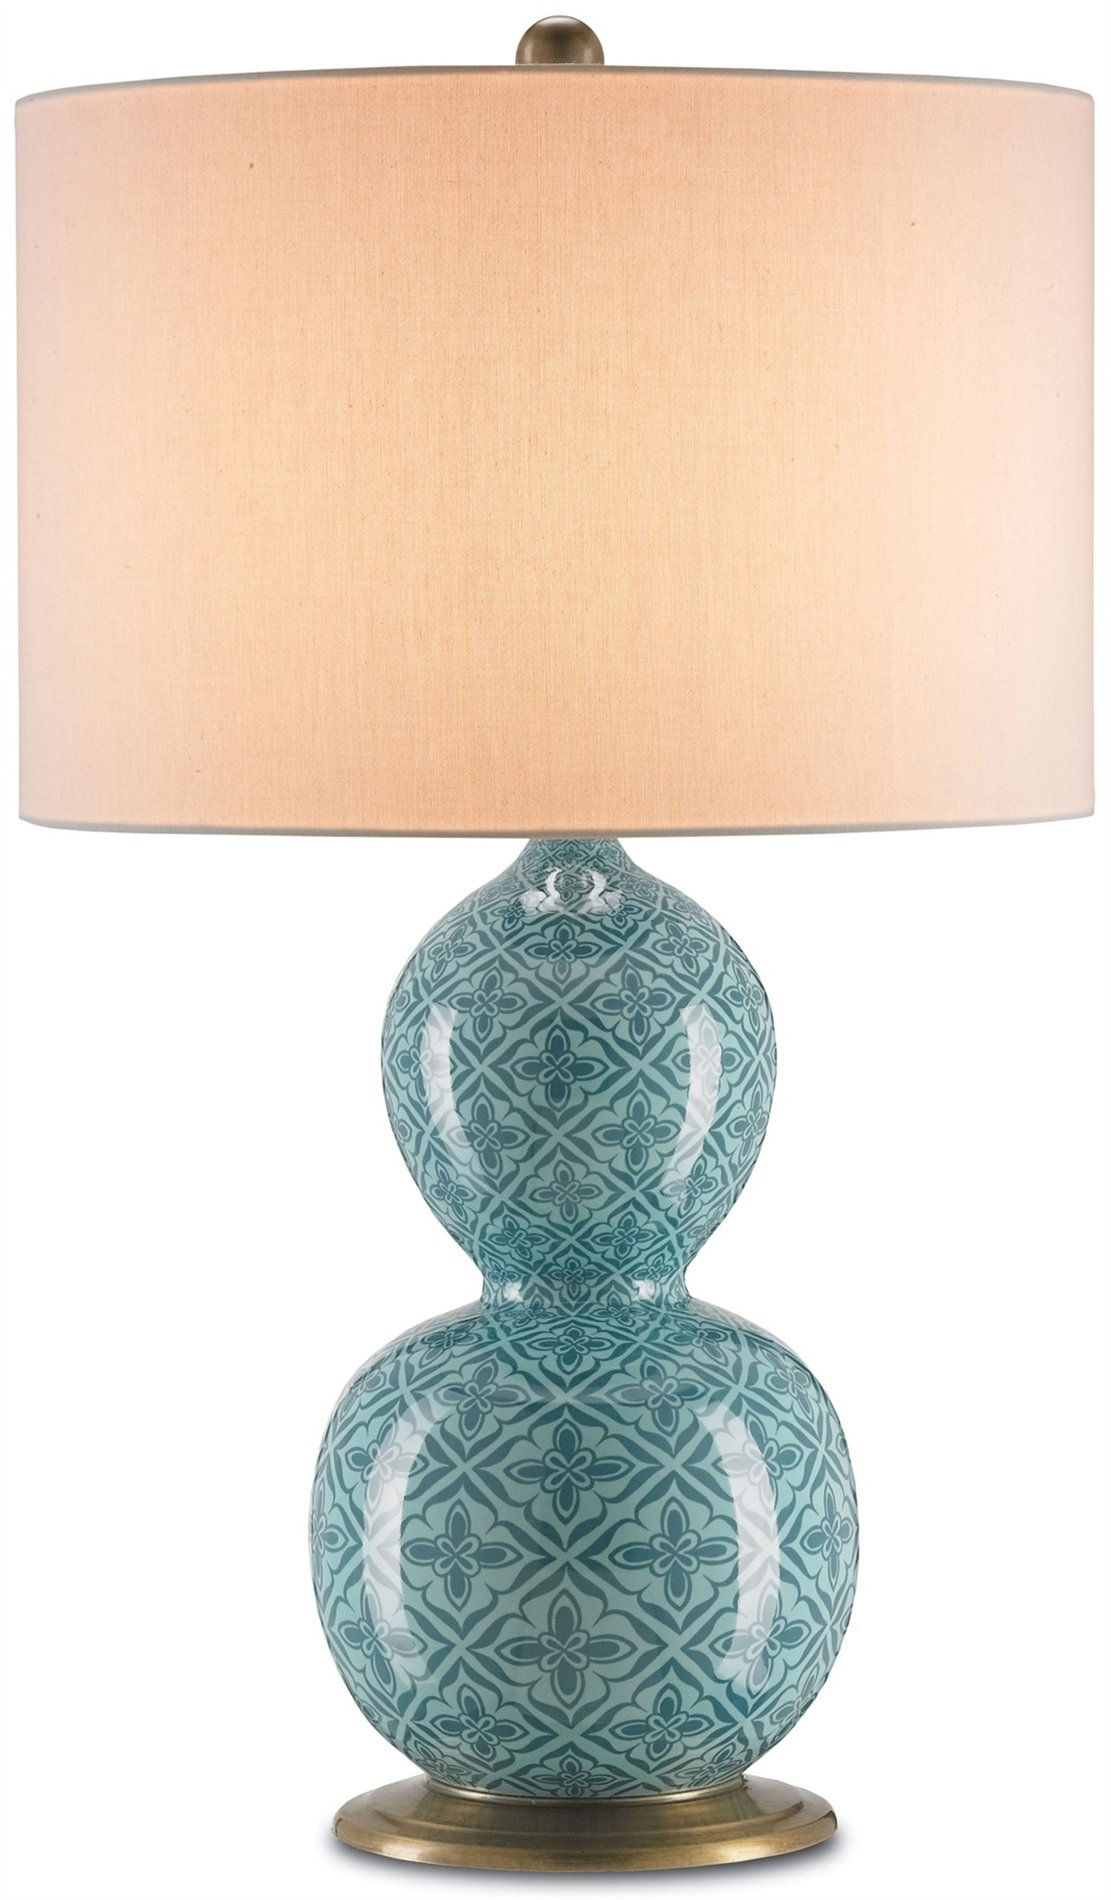 Glasgow Transitional Table Lamp